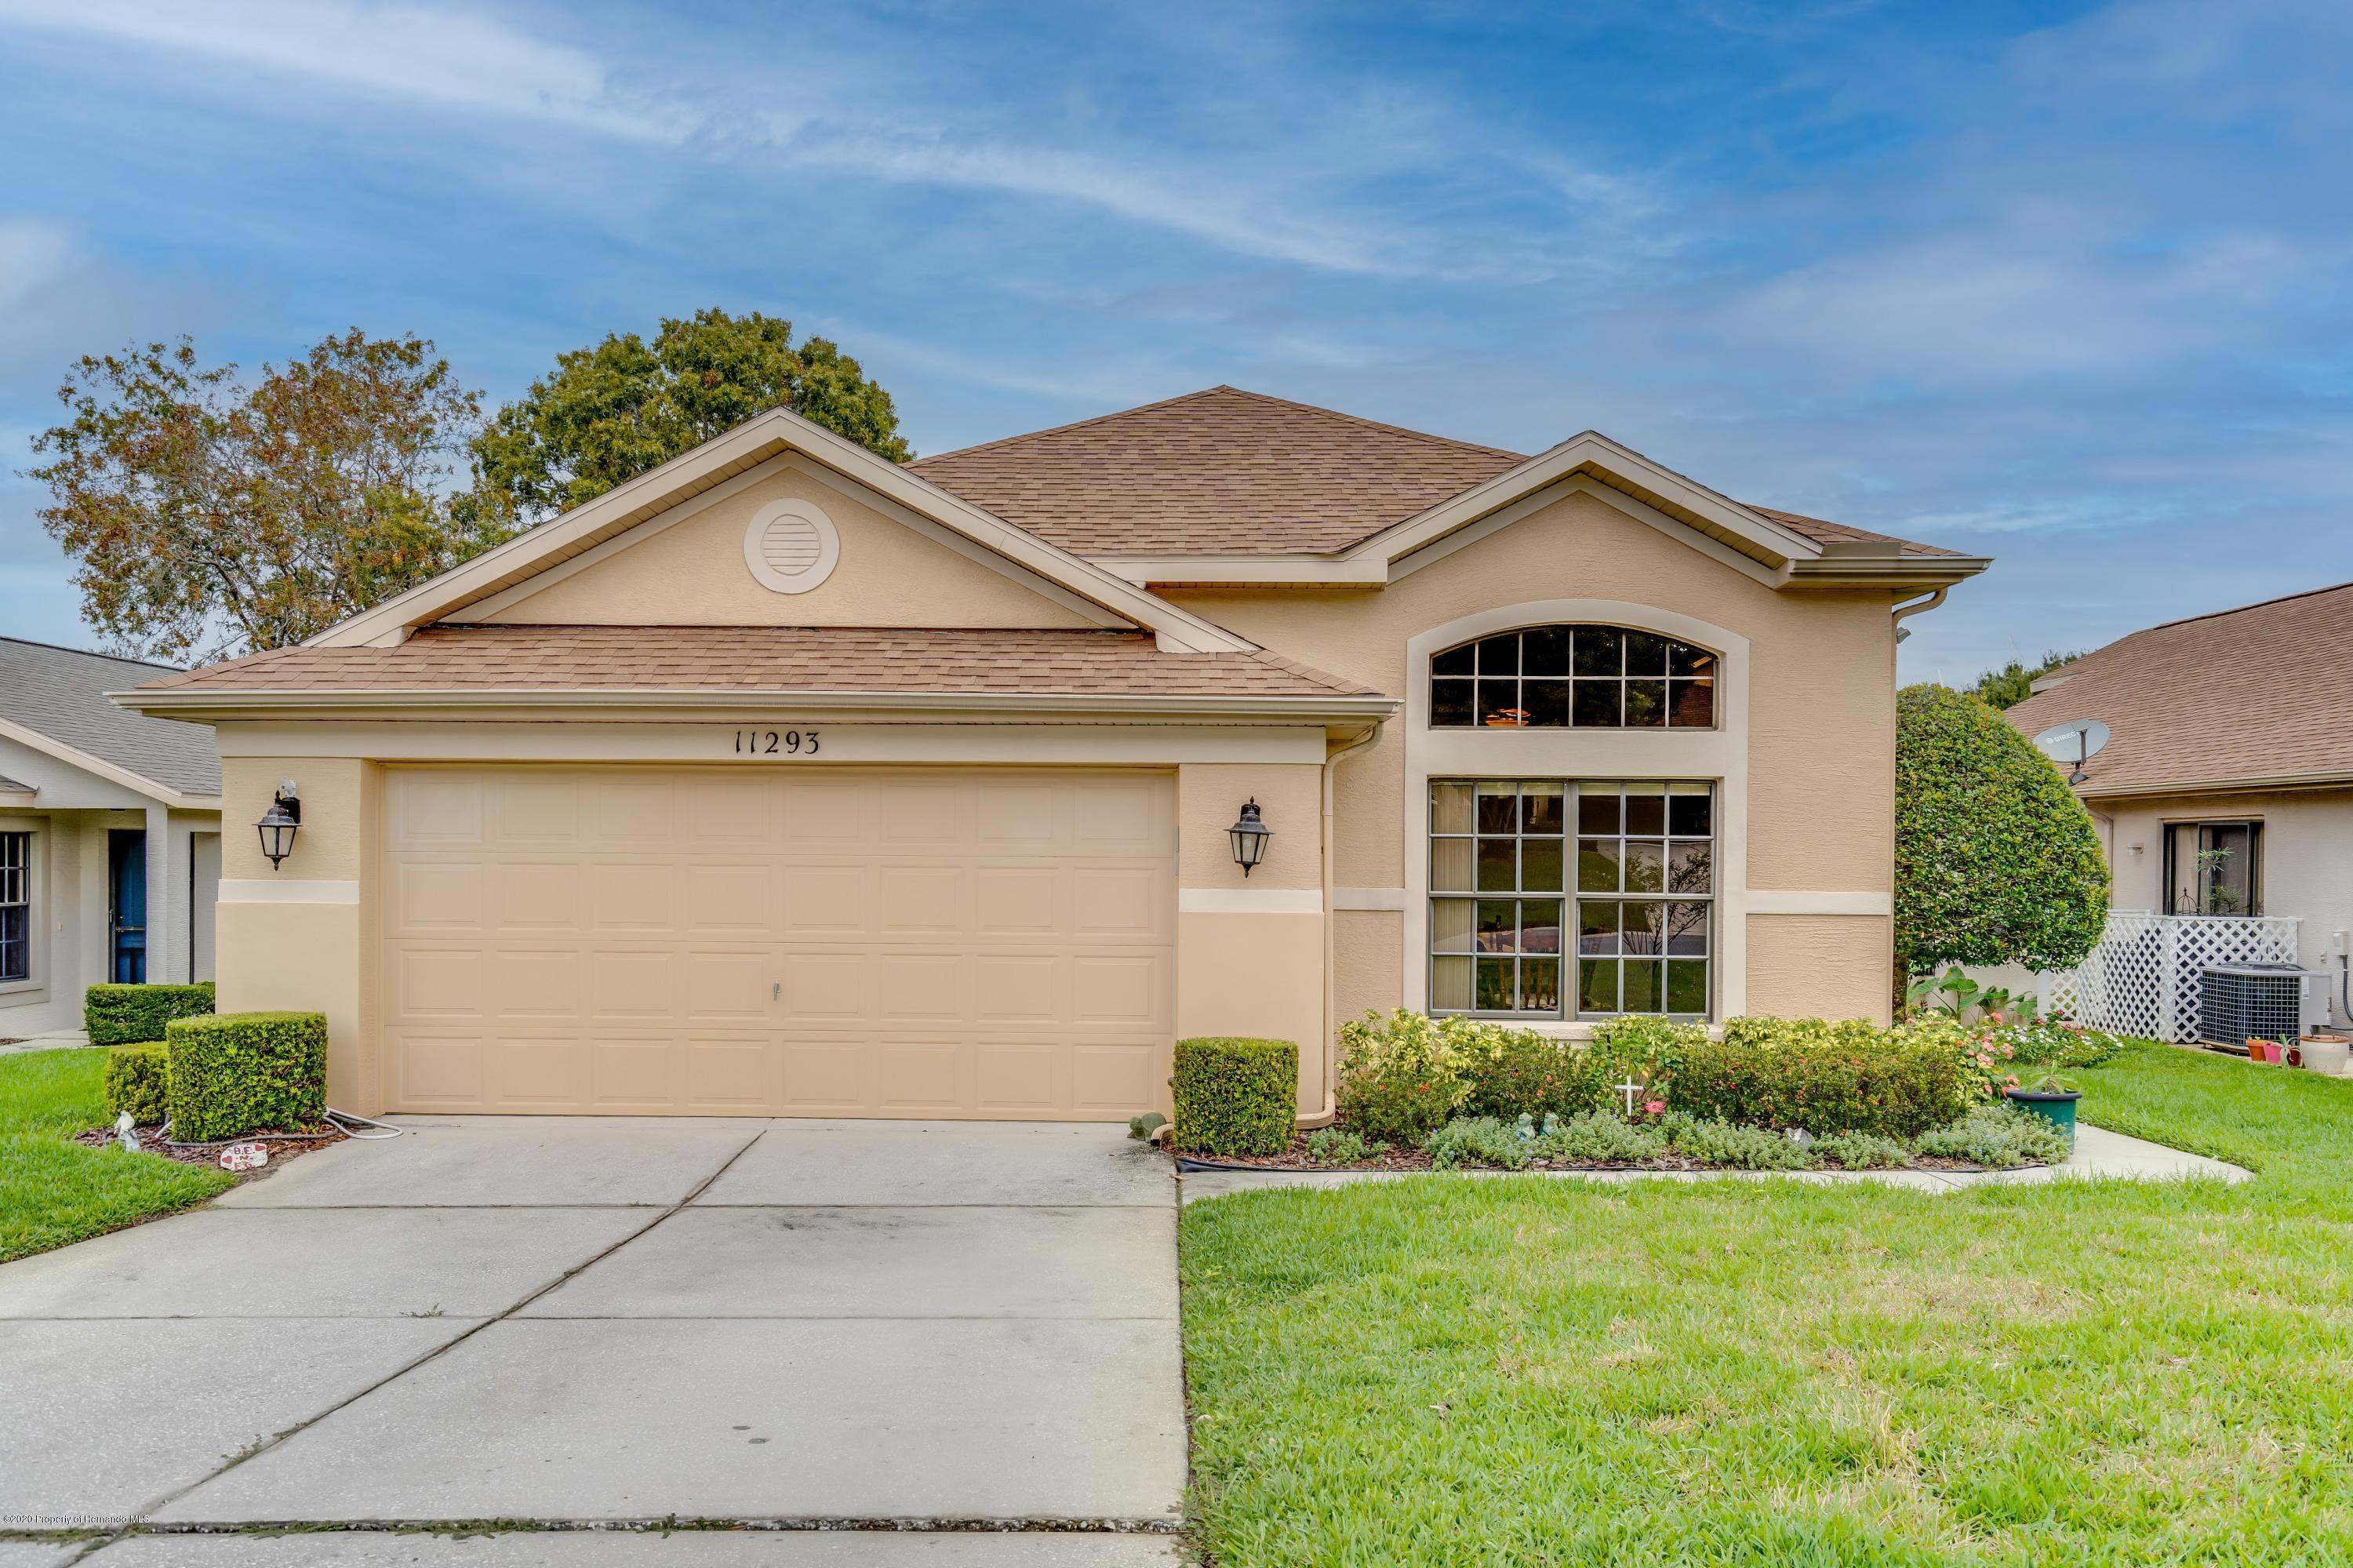 Details for 11293 Copley Court, Spring Hill, FL 34609